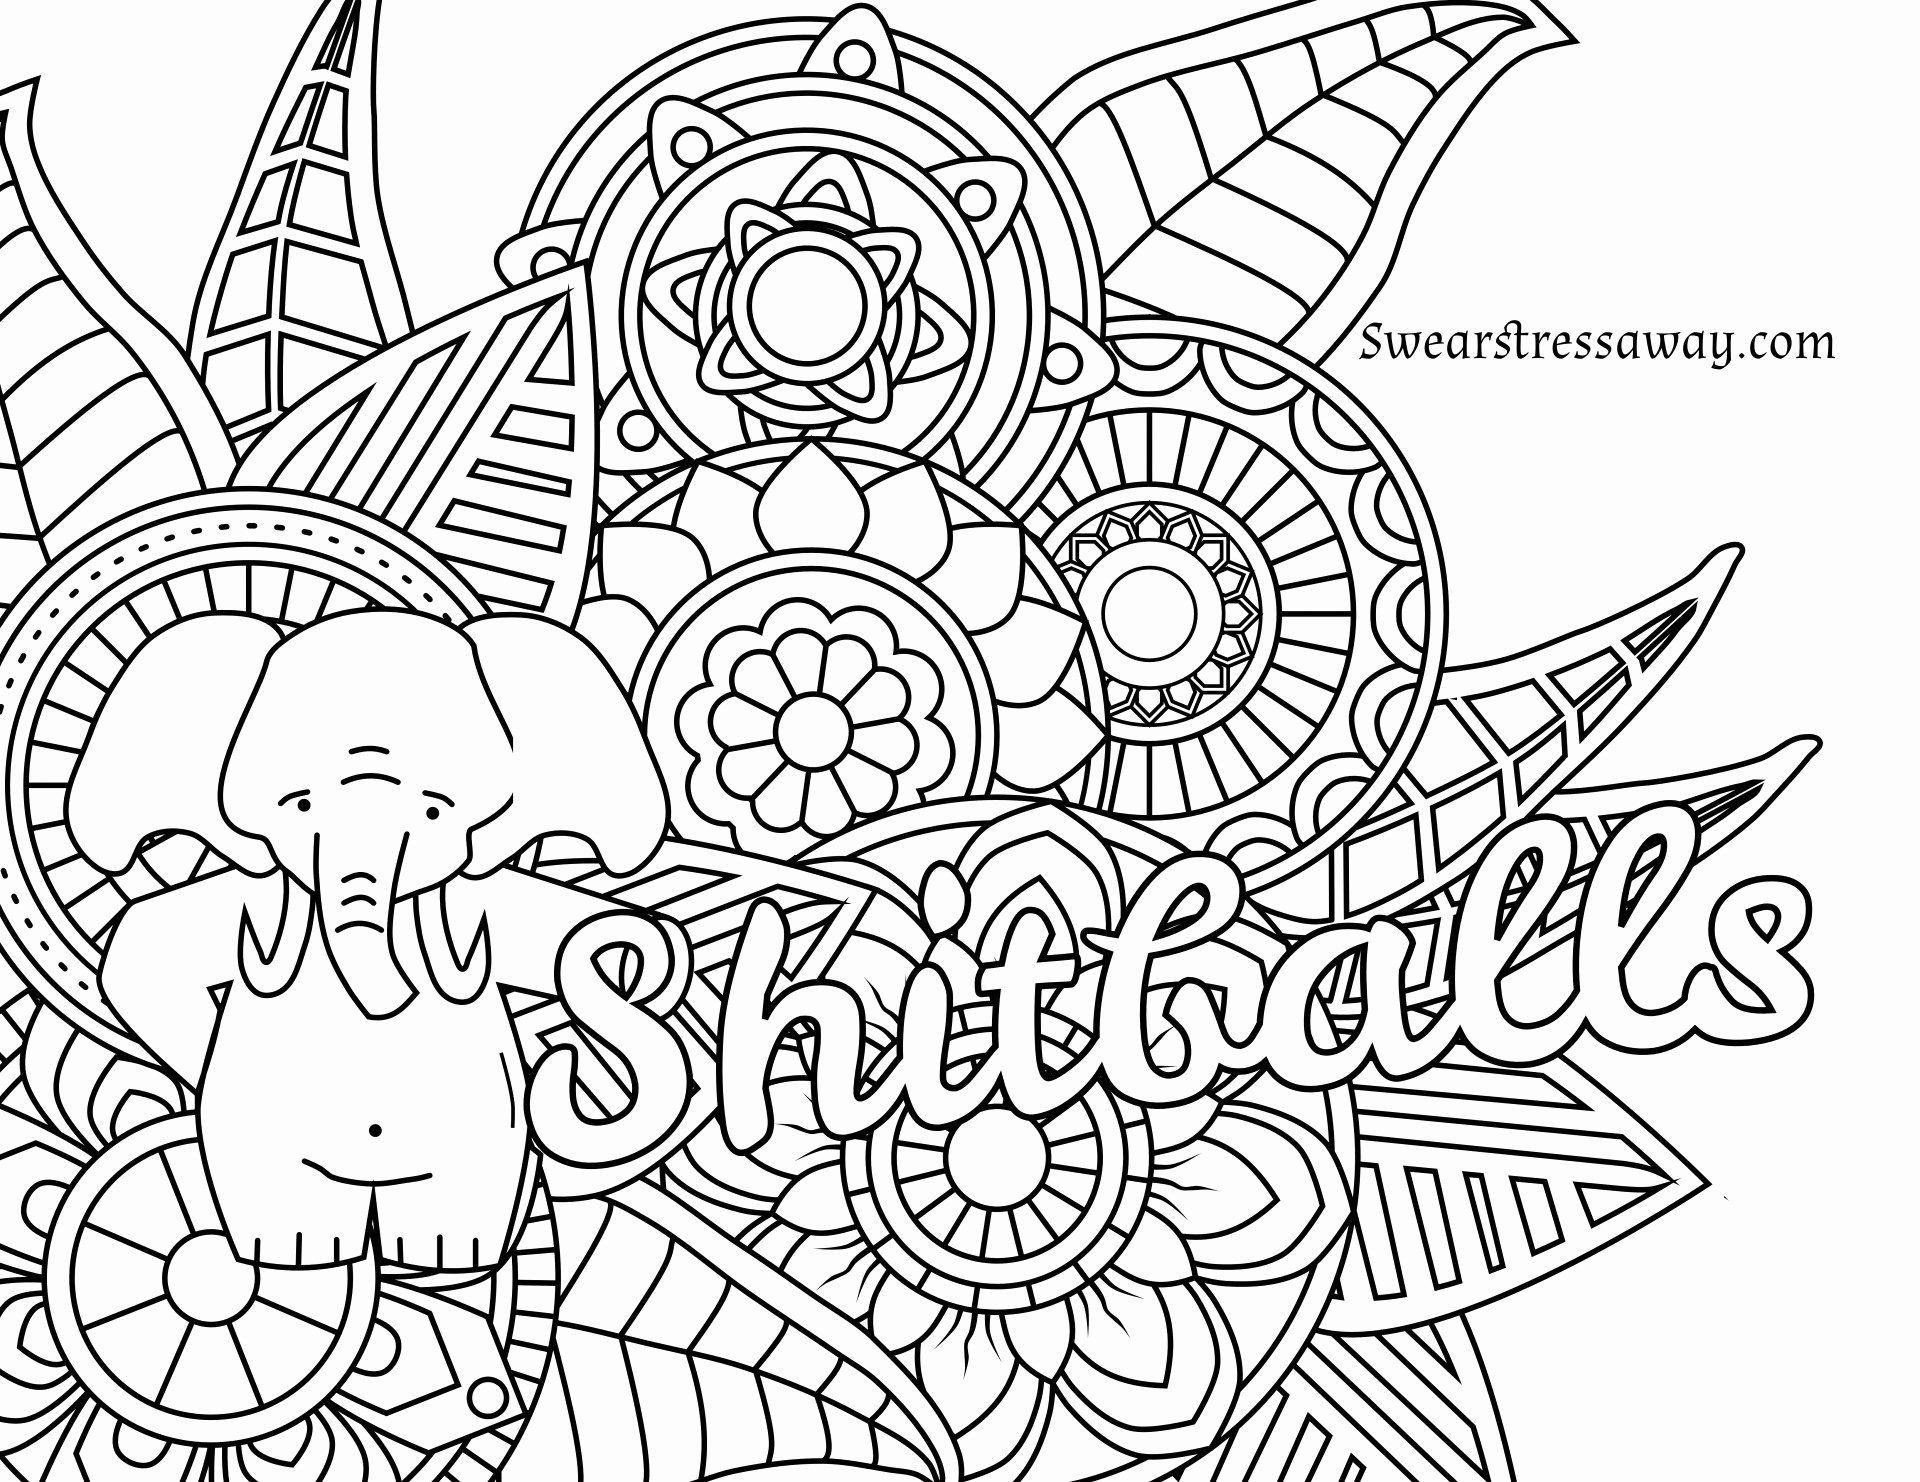 Cute Narwhal Coloring Page Best Of Collection Cute Coloring Pages Girls Colouring Pages For Di 2020 Buku Mewarnai Halaman Mewarnai Halaman Mewarnai Bunga